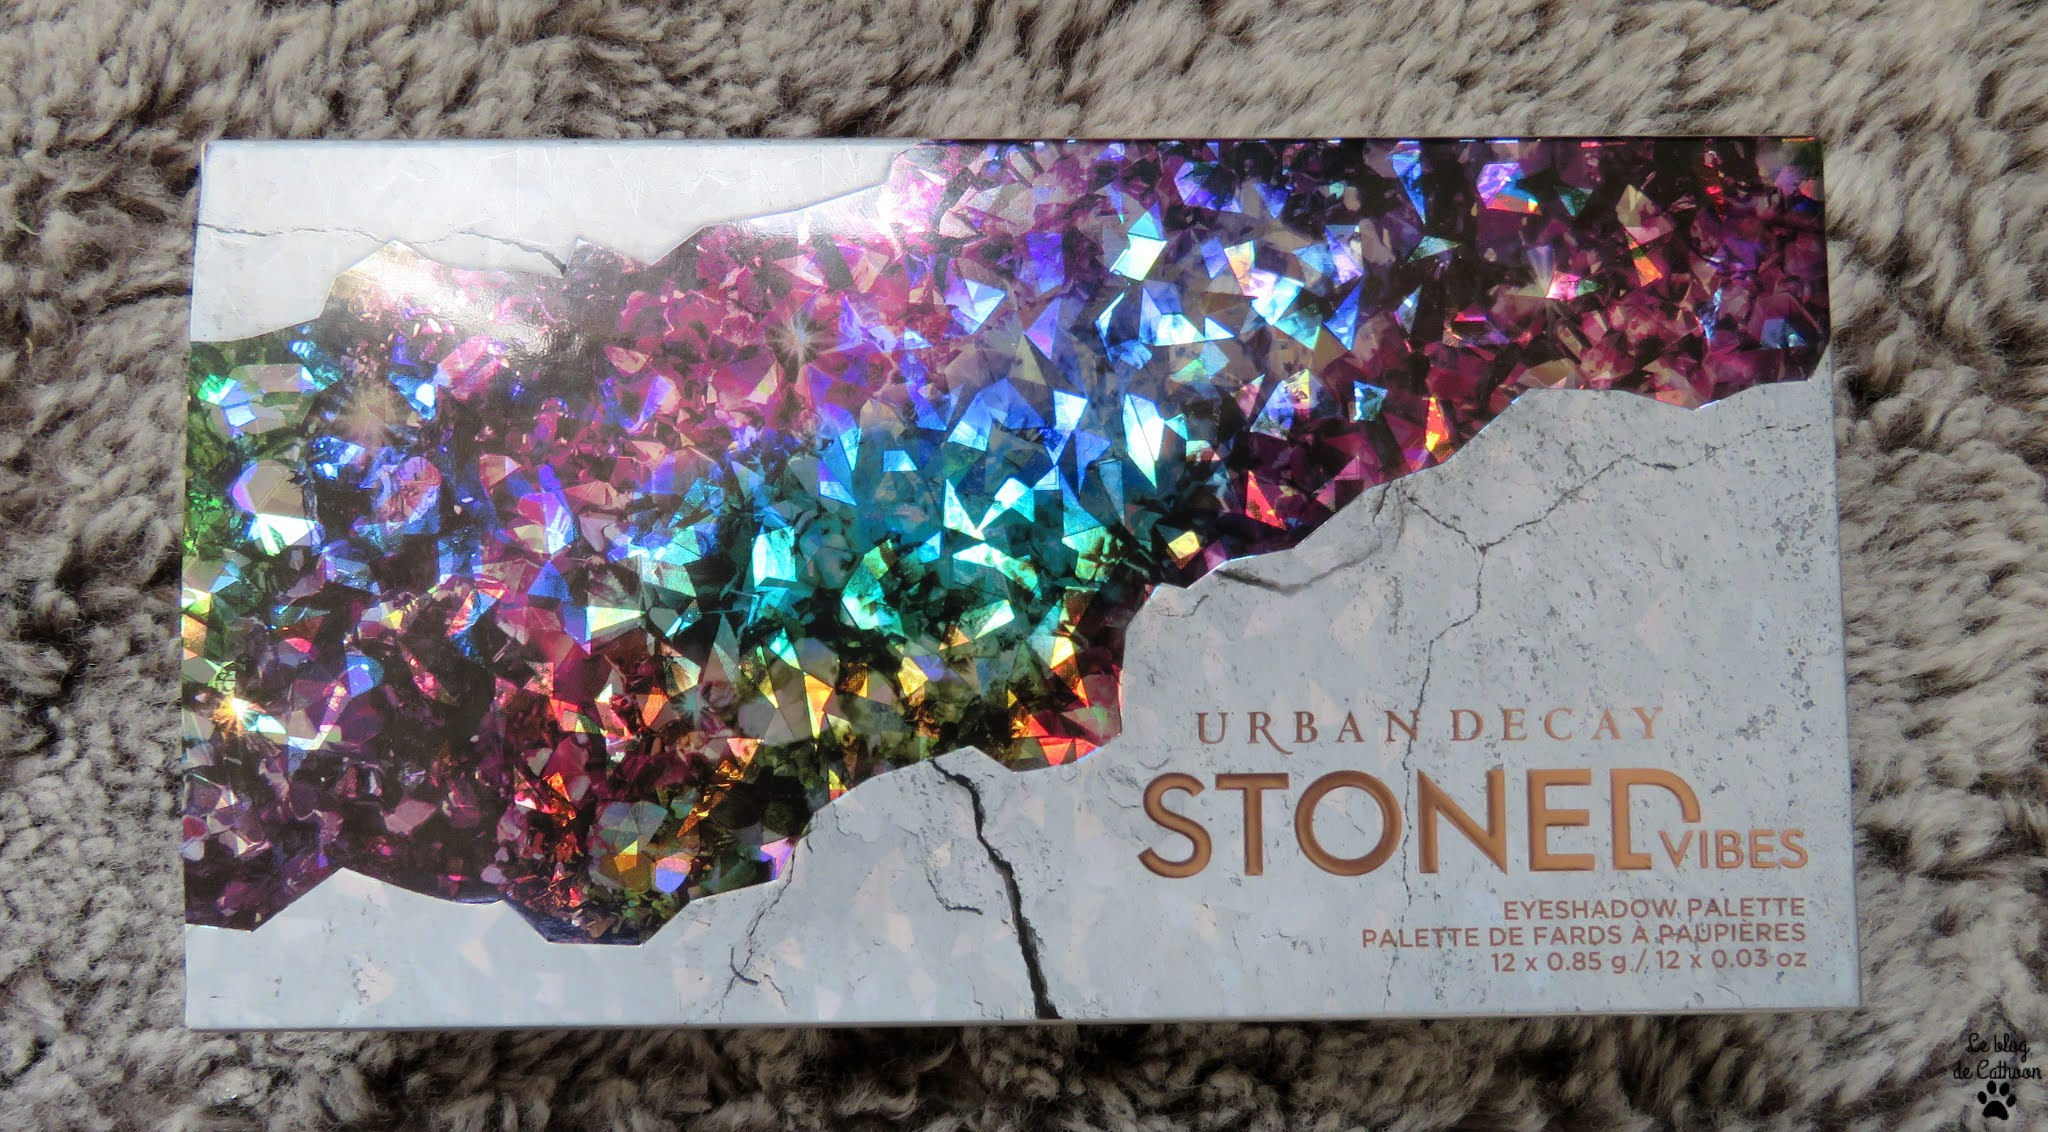 Stoned Vibes Urban Decay